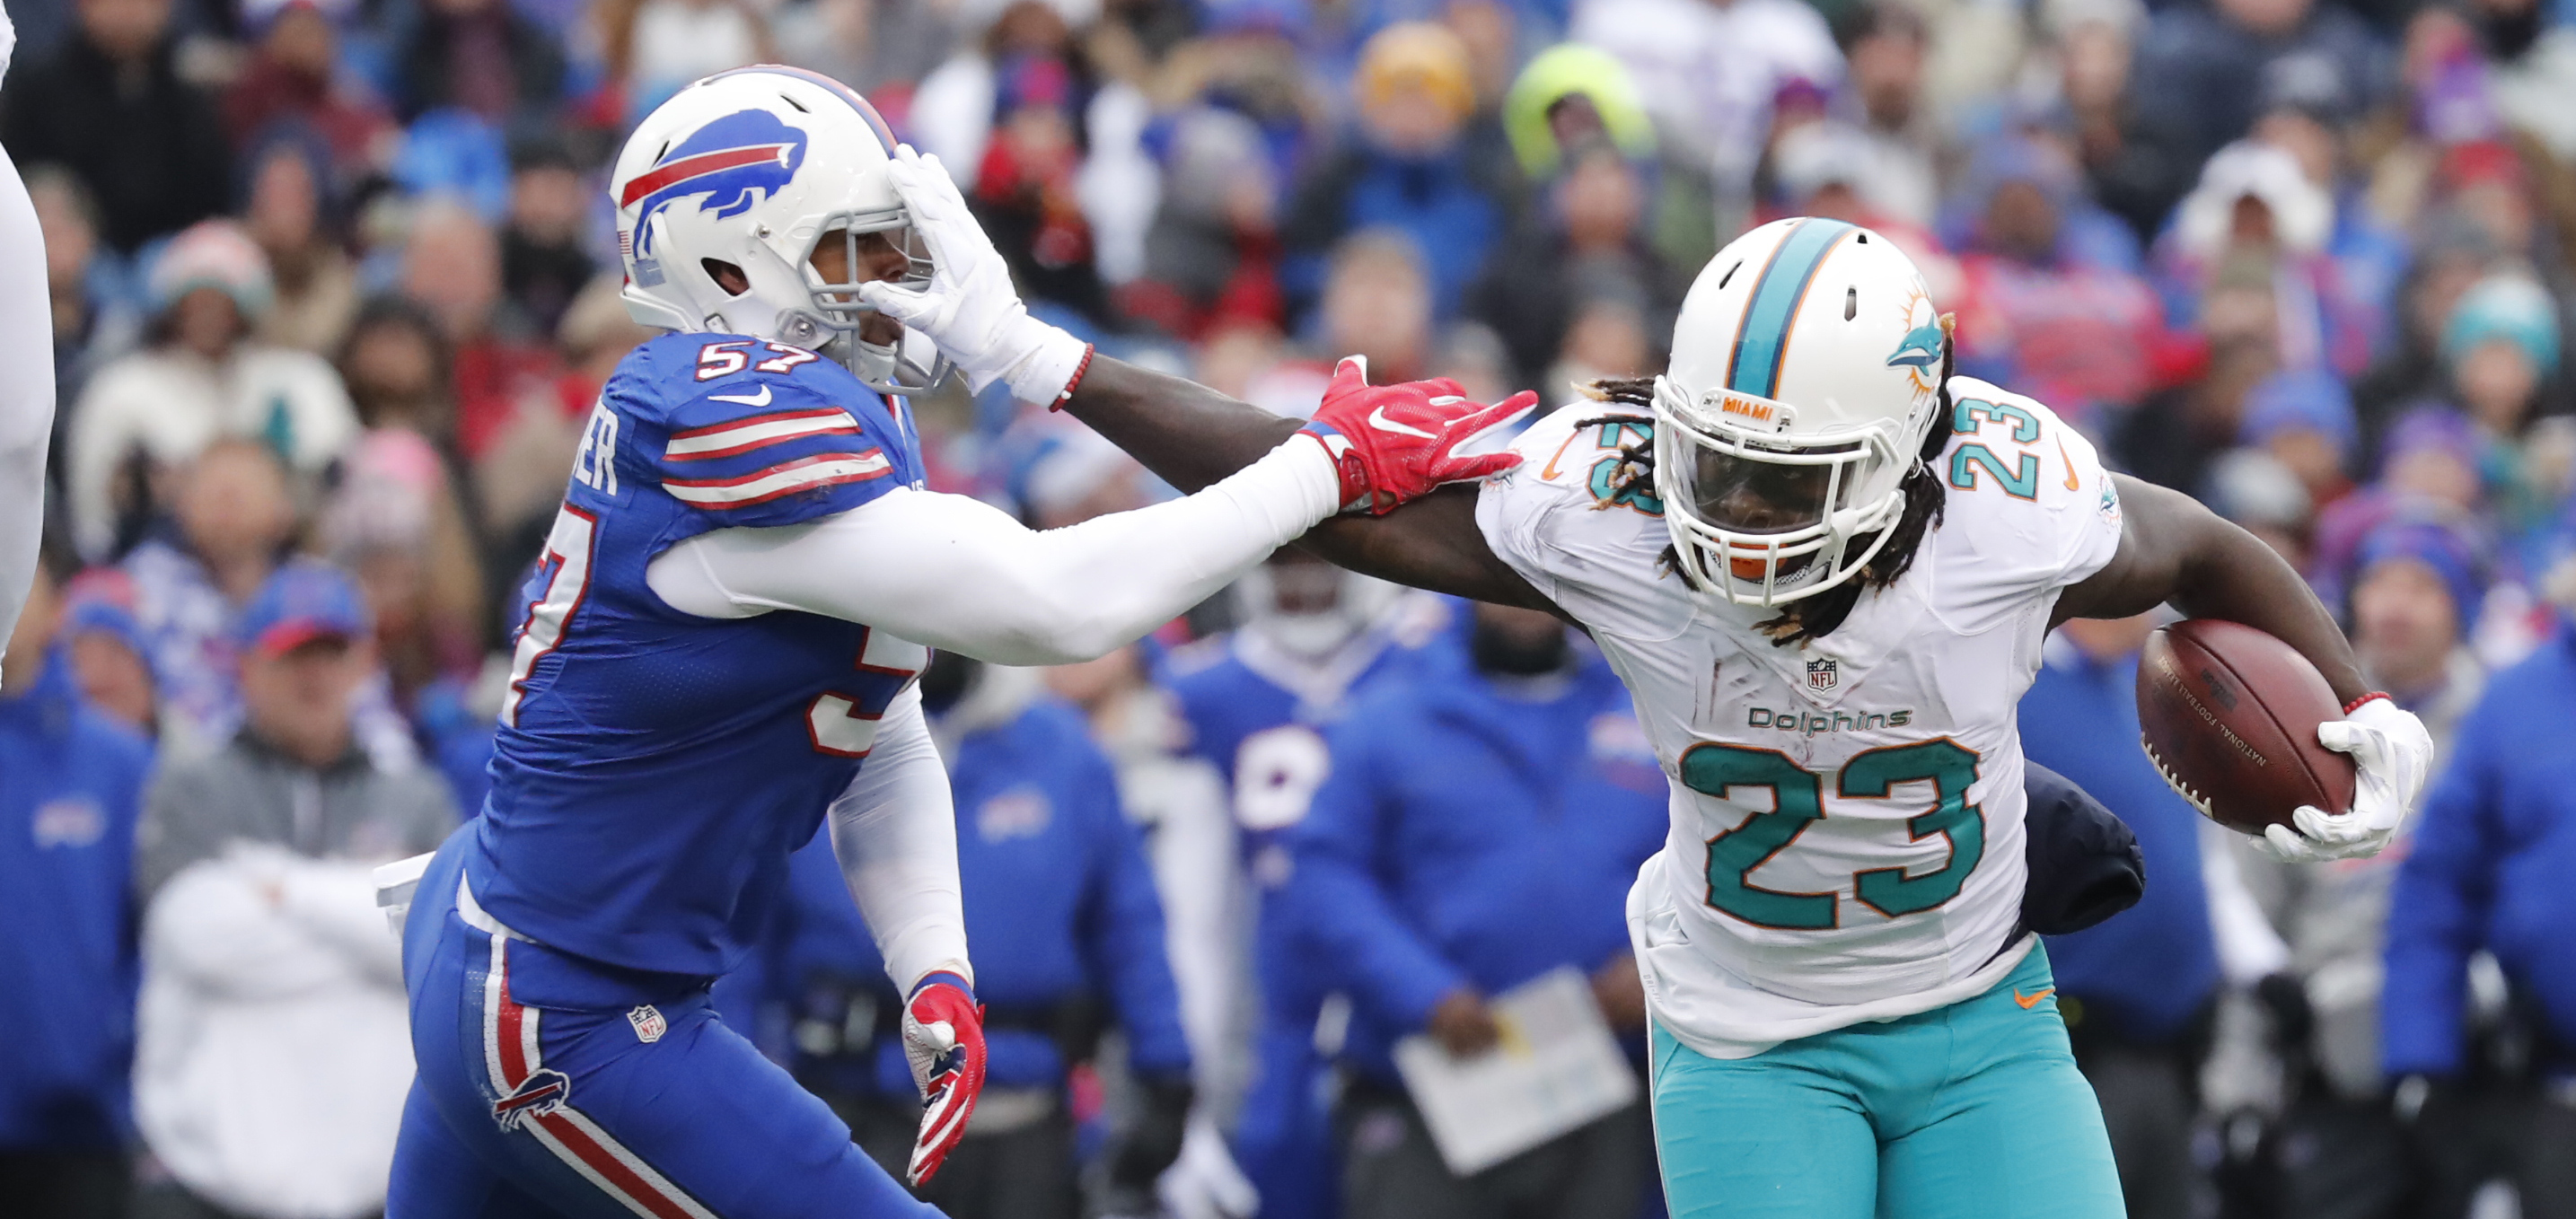 Lorenzo Alexander gets stiff-armed by the Miami Dolphins' Jay Ajayi during the first half. (Harry Scull Jr./Buffalo News)